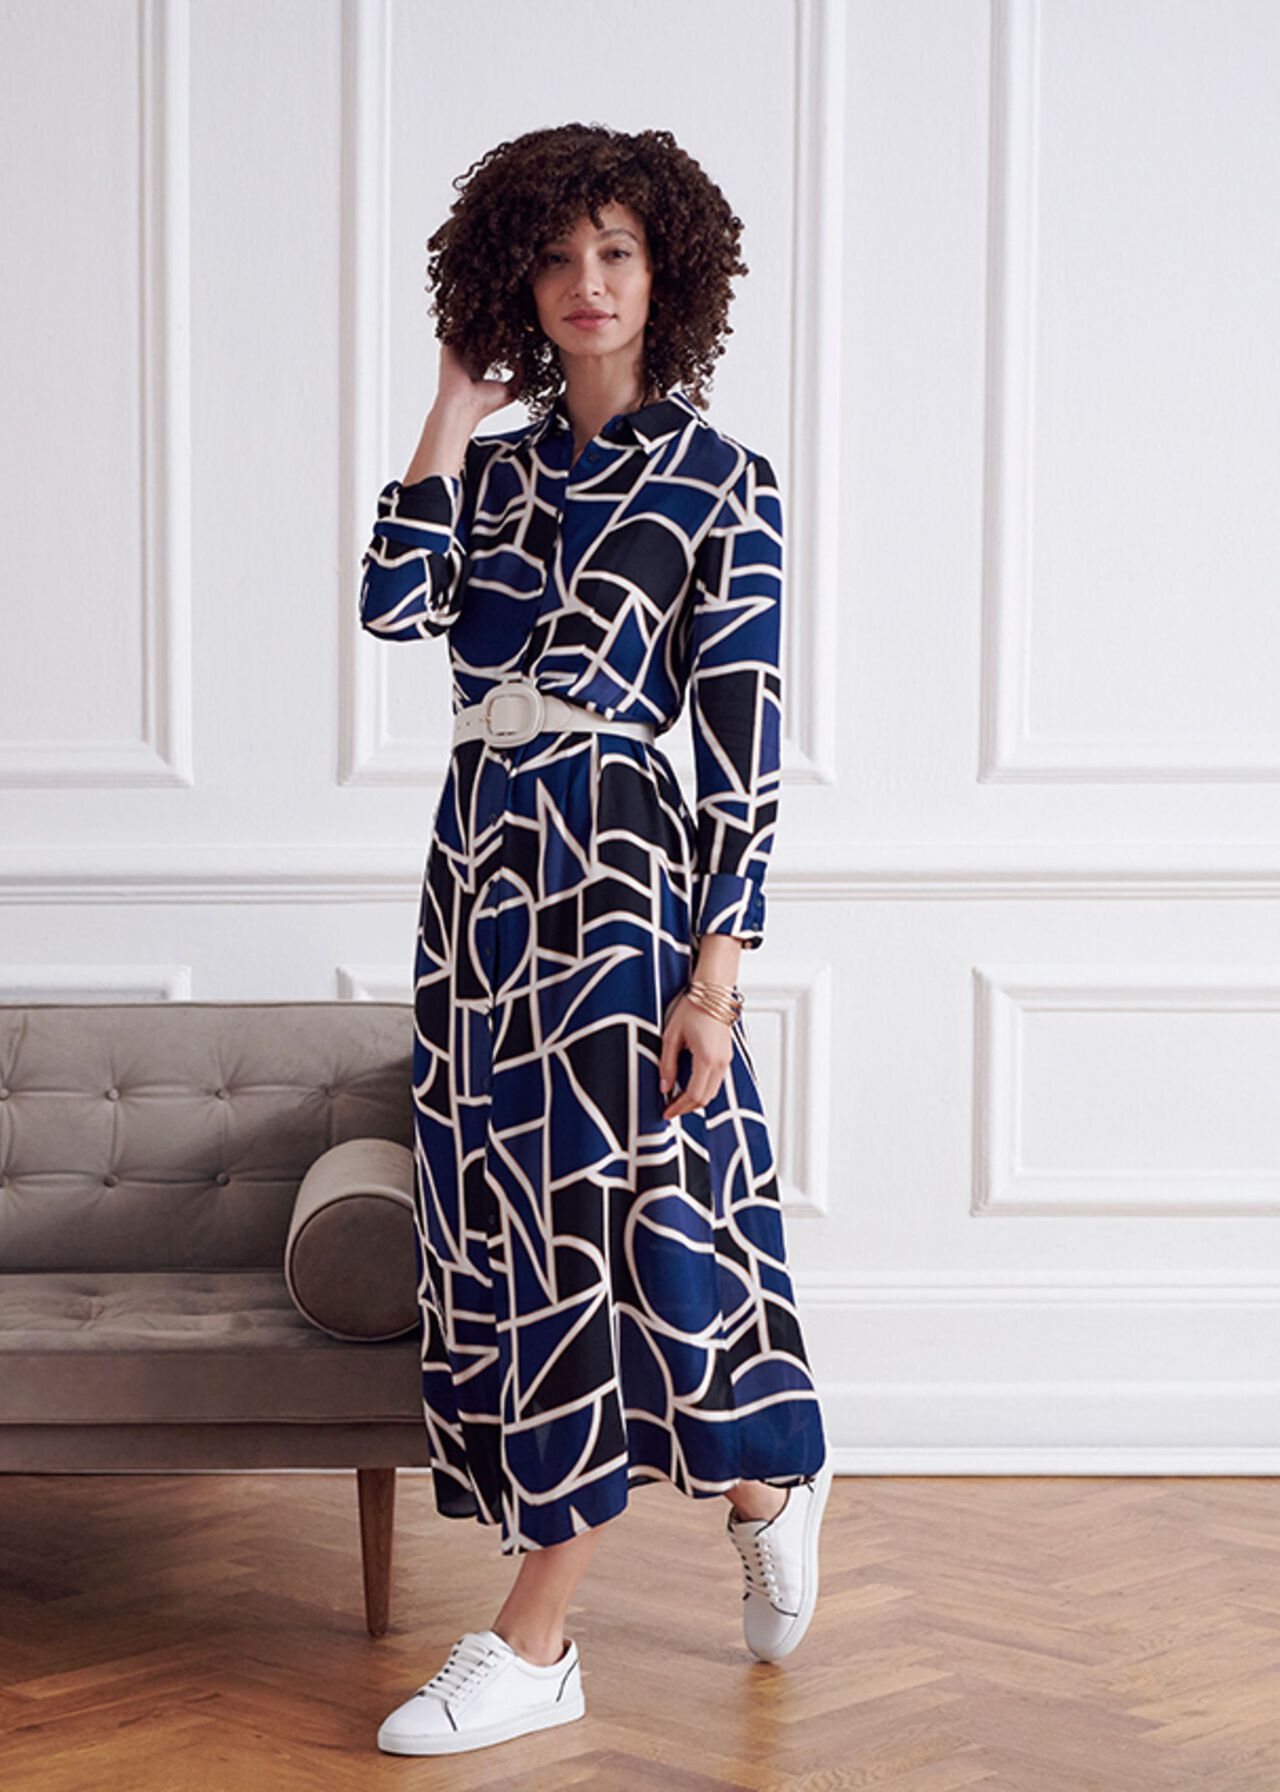 The Nadine Dress With Trainers Outfit, , hi-res